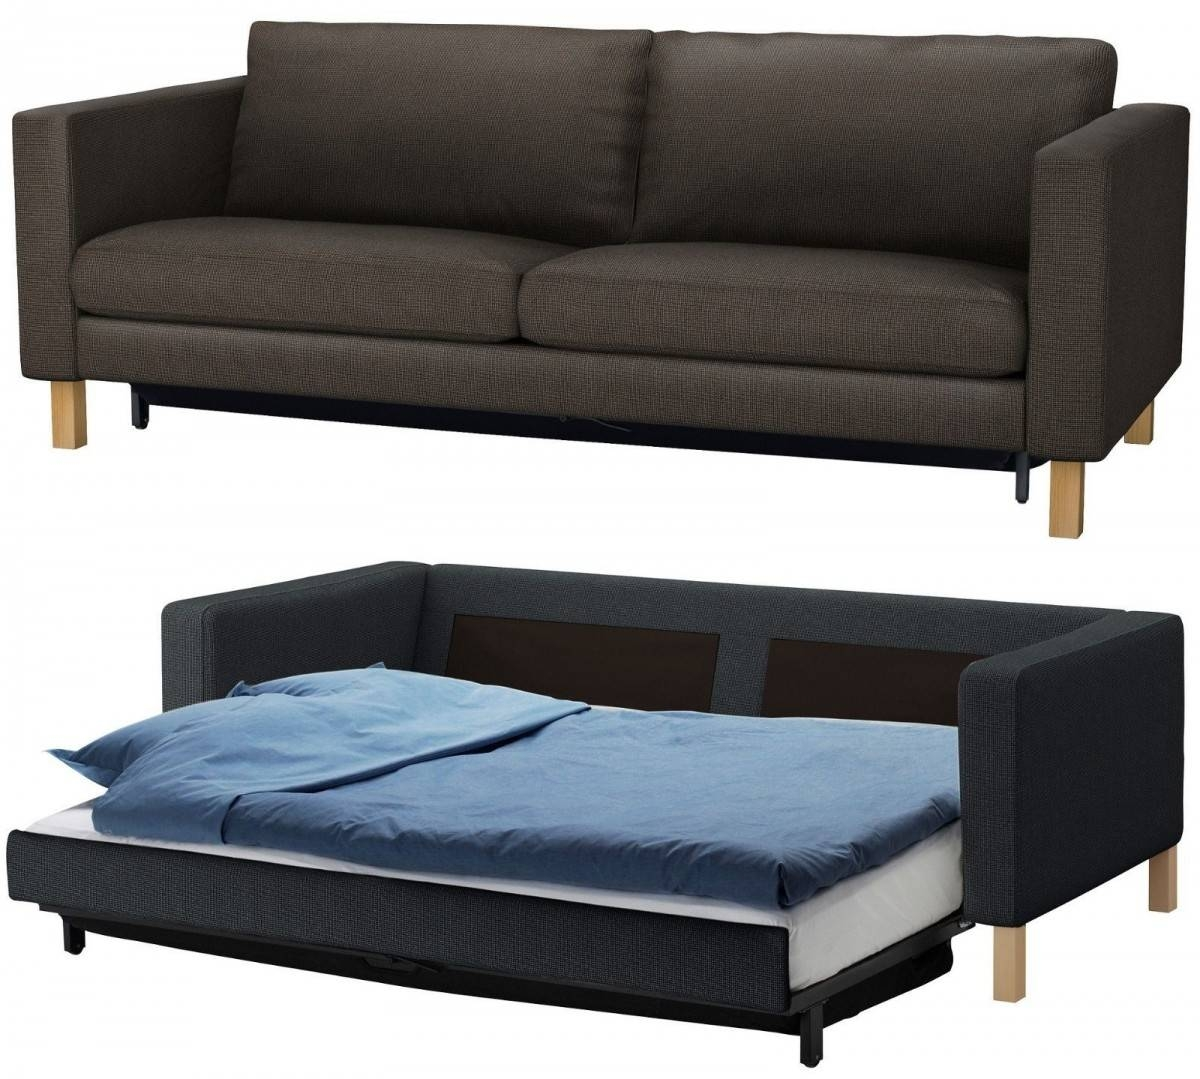 Ikea Sleeper Sofa: 15 Best Ideas Of Queen Size Convertible Sofa Beds